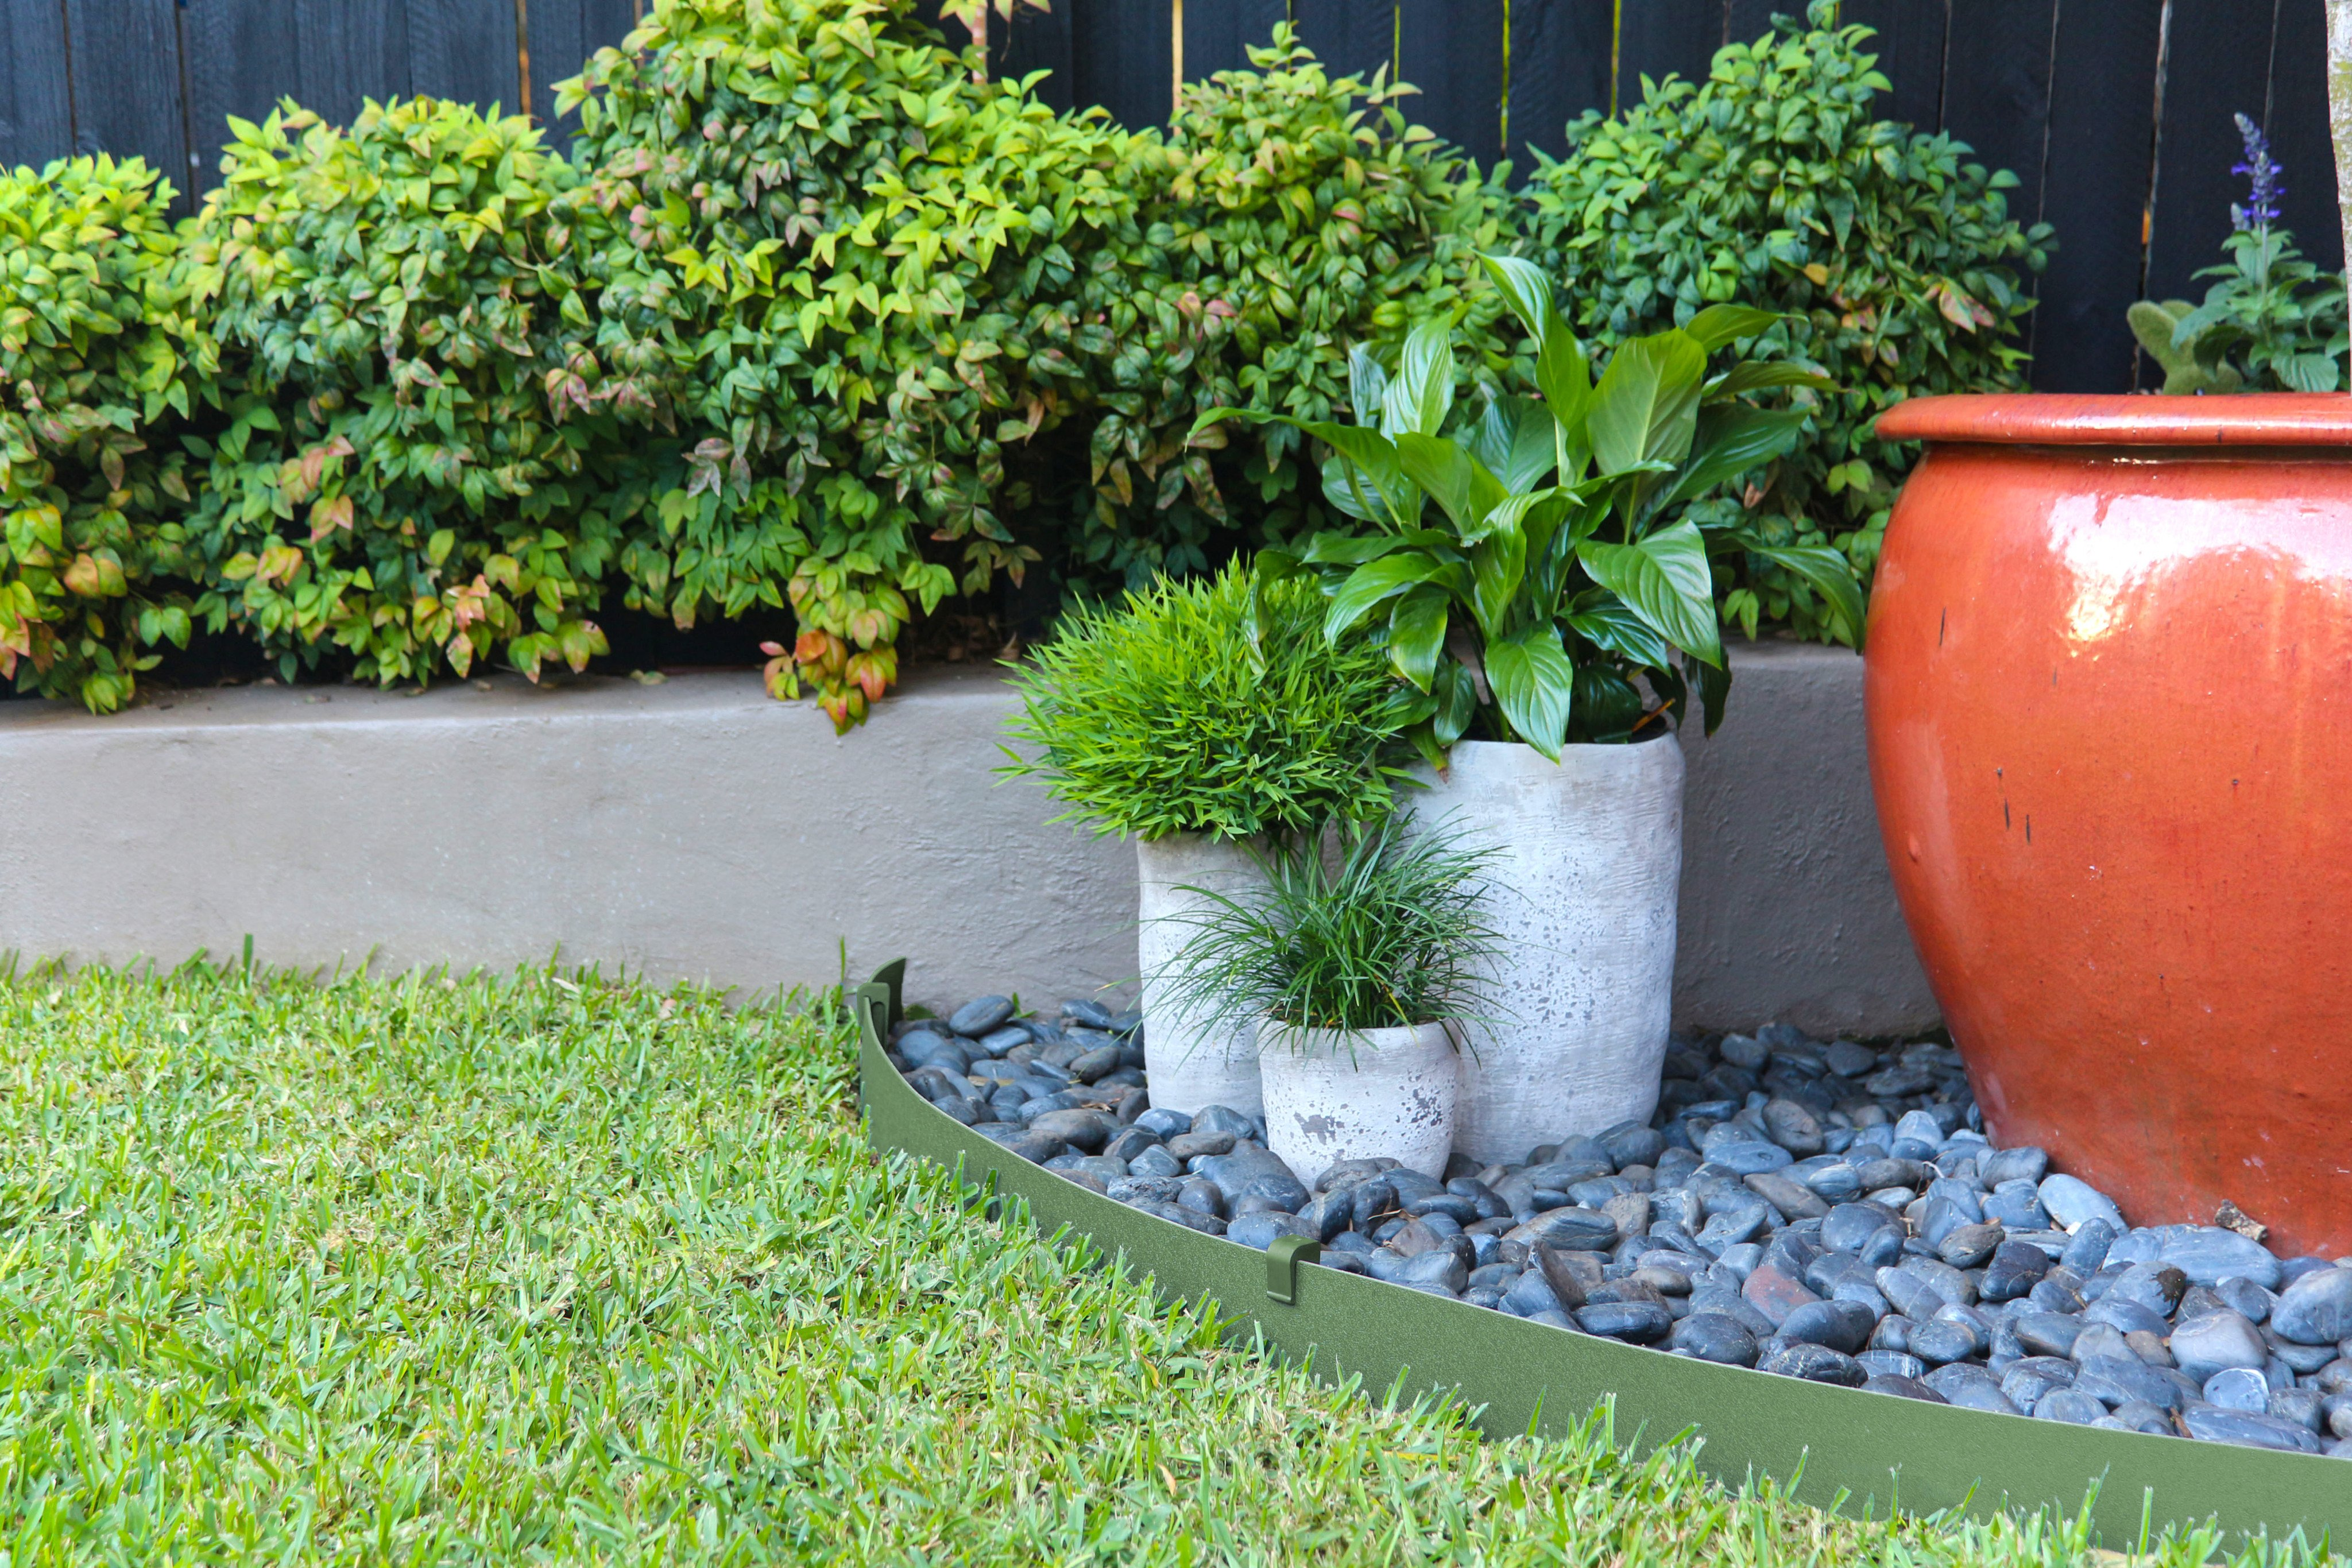 Plastic garden edging – Better fit to your lawn edging